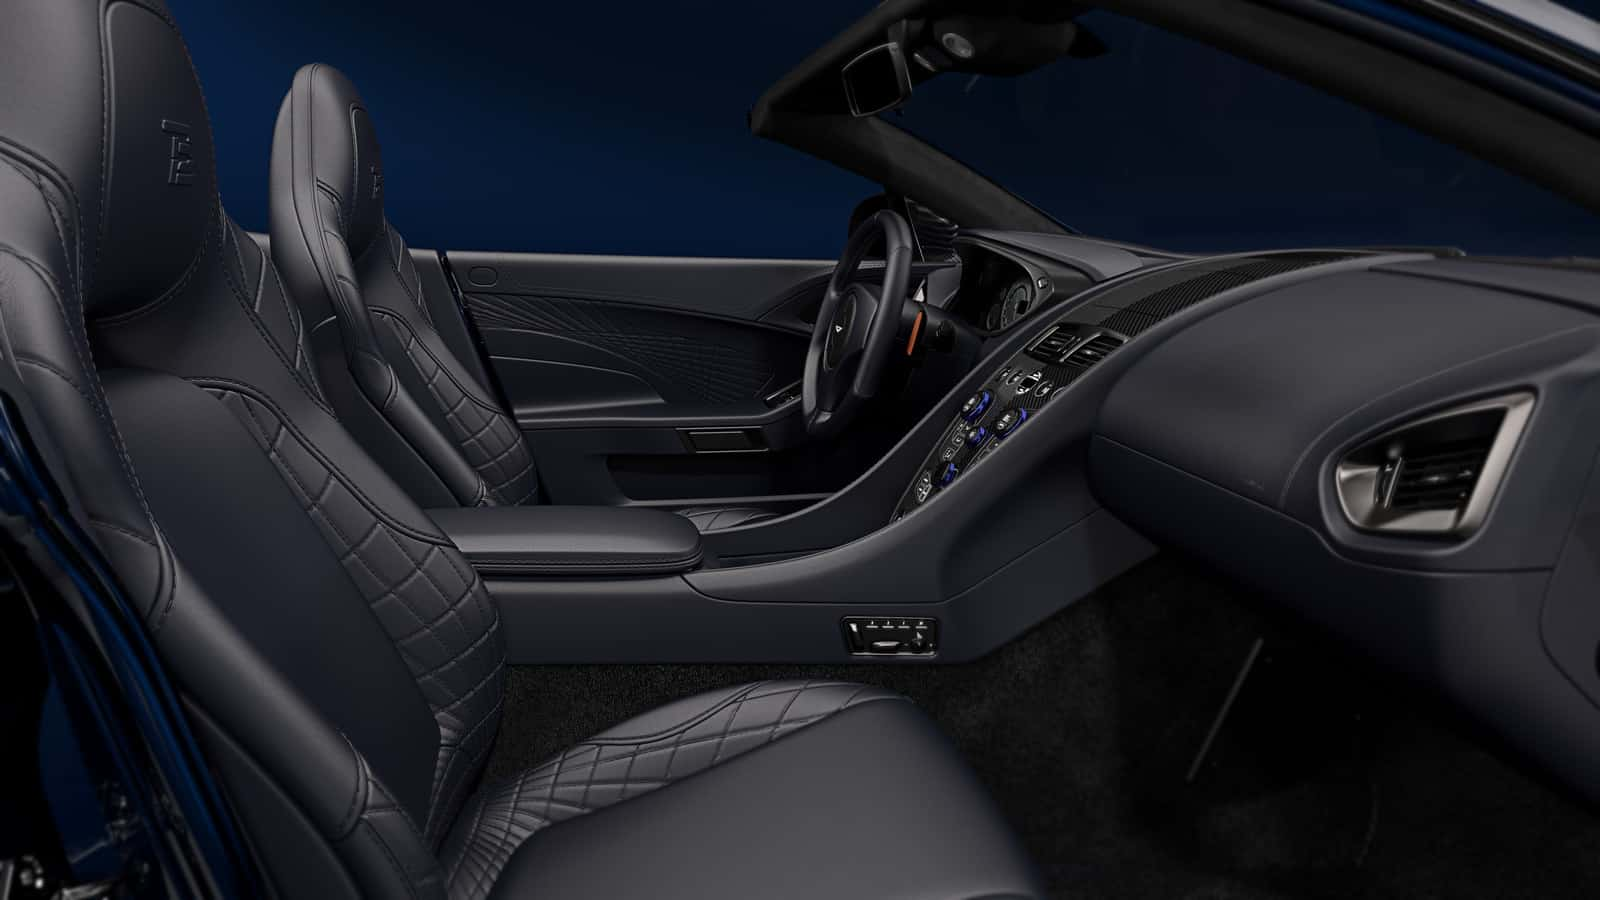 tom brady 39 s aston martin vanquish s volante is magical. Black Bedroom Furniture Sets. Home Design Ideas